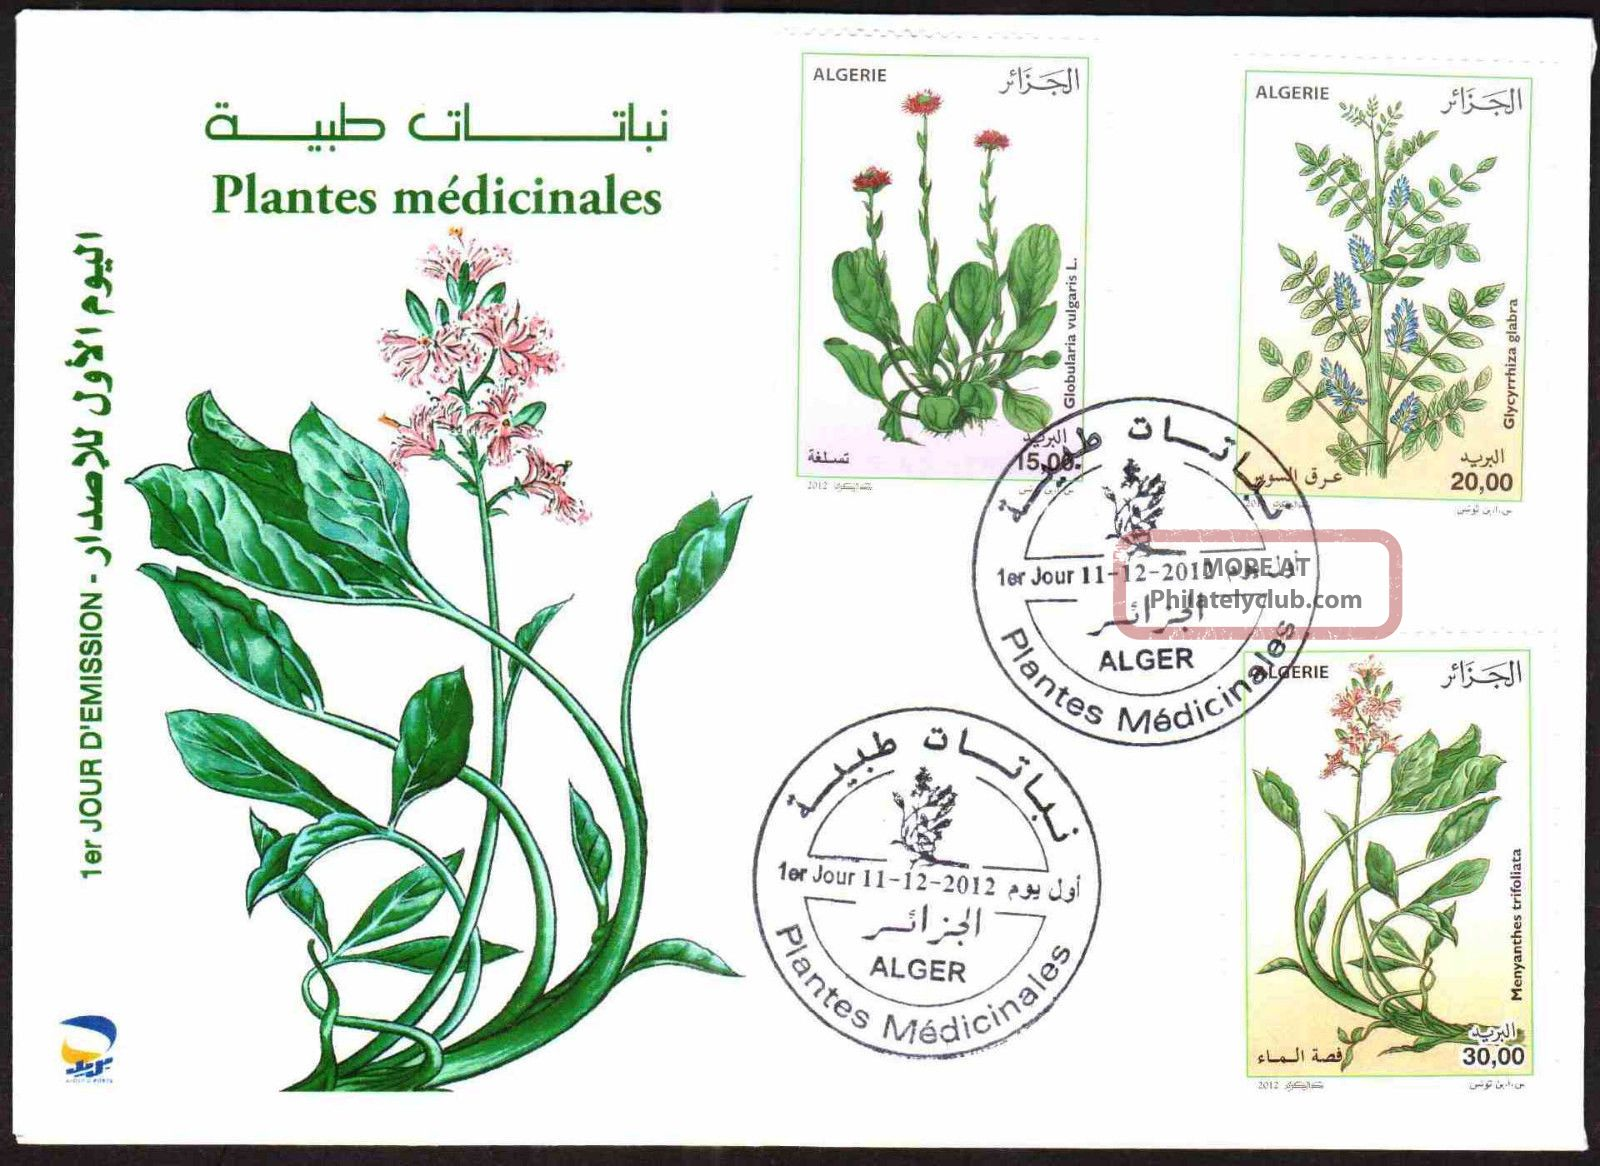 Algeria 2012 - Medicinal Plants (3v) Dec 11th,  2012 - Fdc,  With Topical Cancel Topical Stamps photo